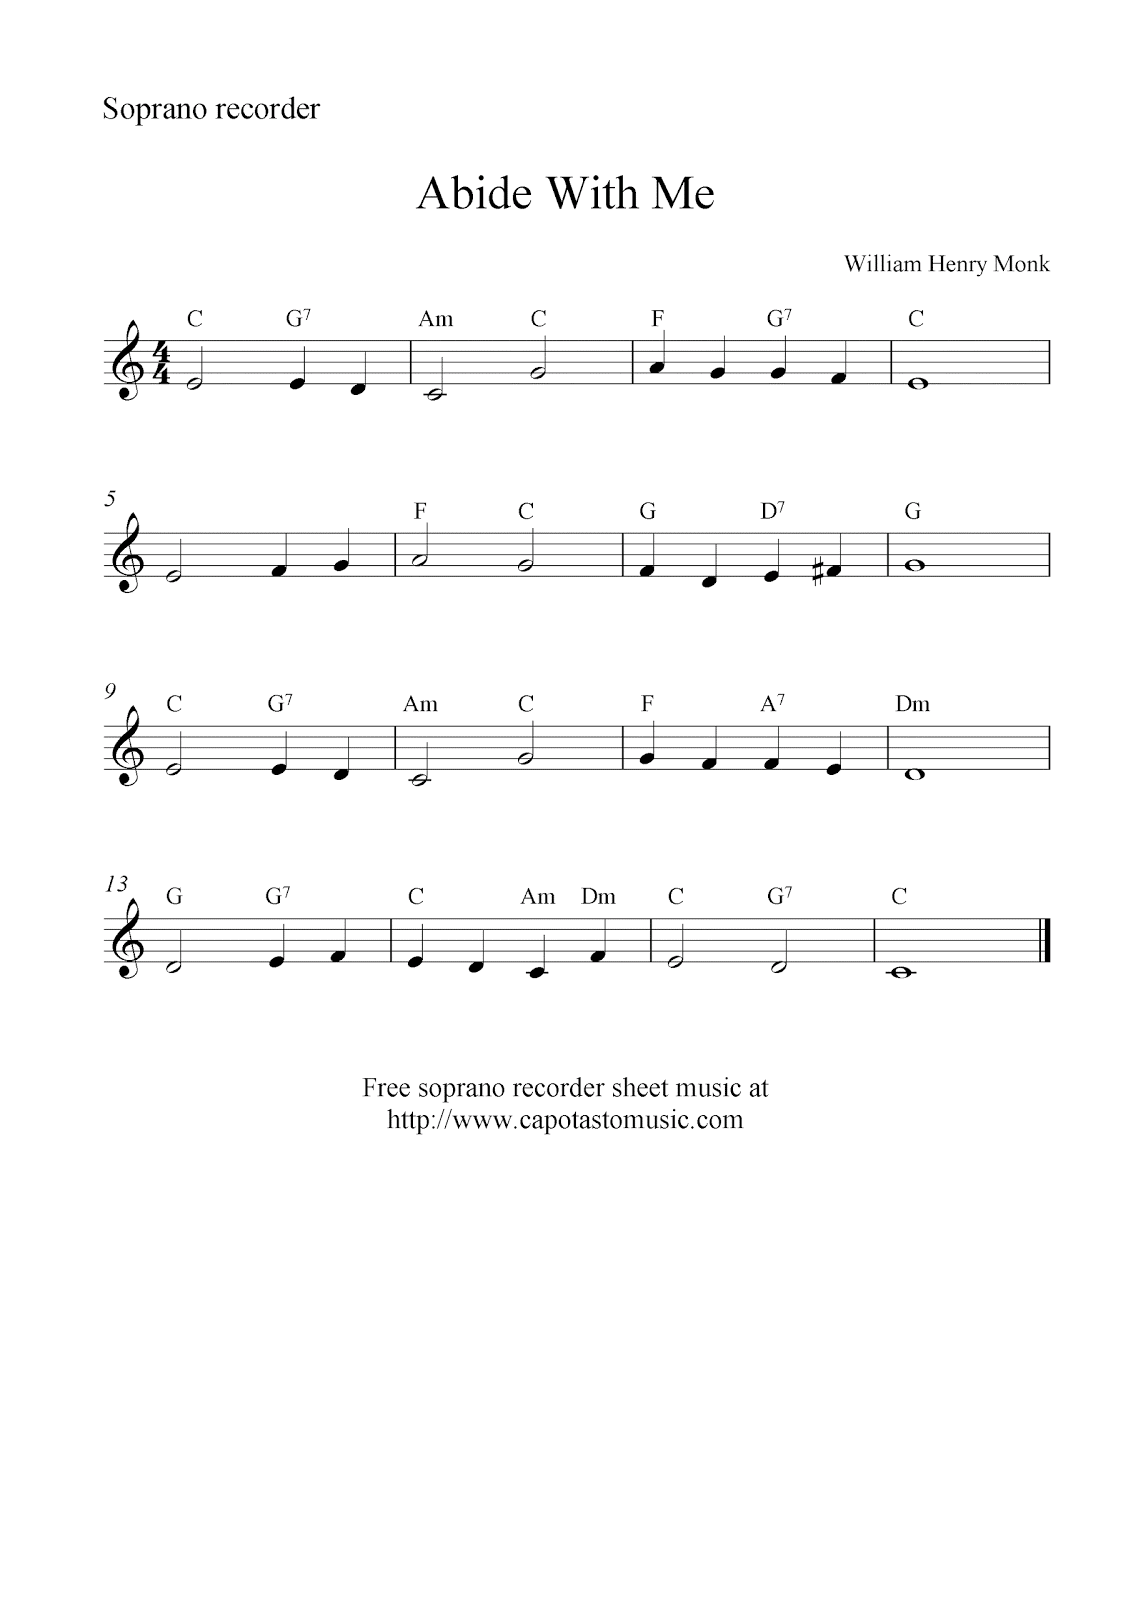 Free soprano recorder sheet music, Abide With Me